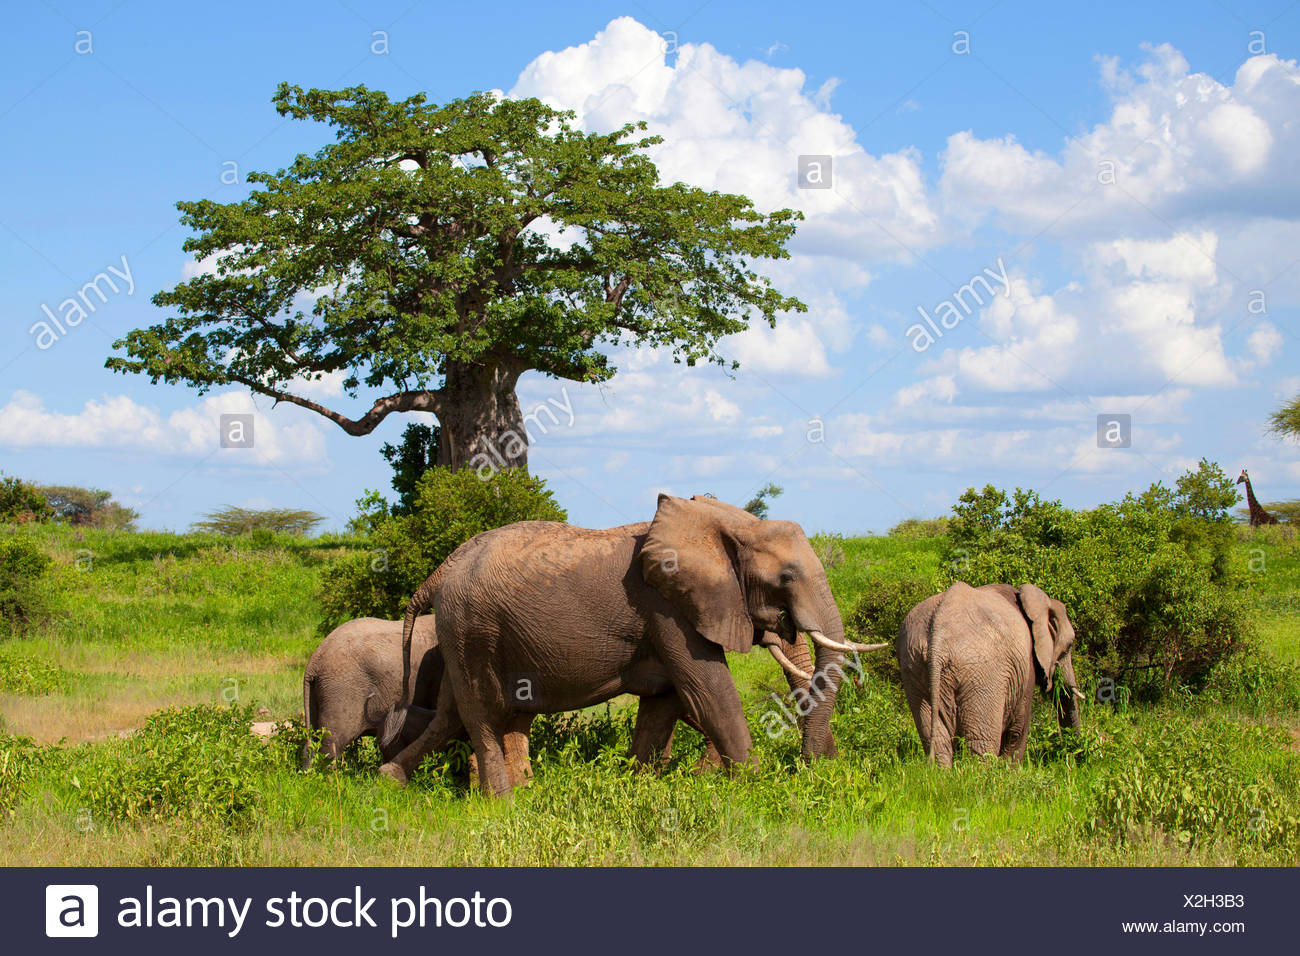 African elephant (Loxodonta africana), cow elephant with young animals at an umbrella thorn, Kenya - Stock Image